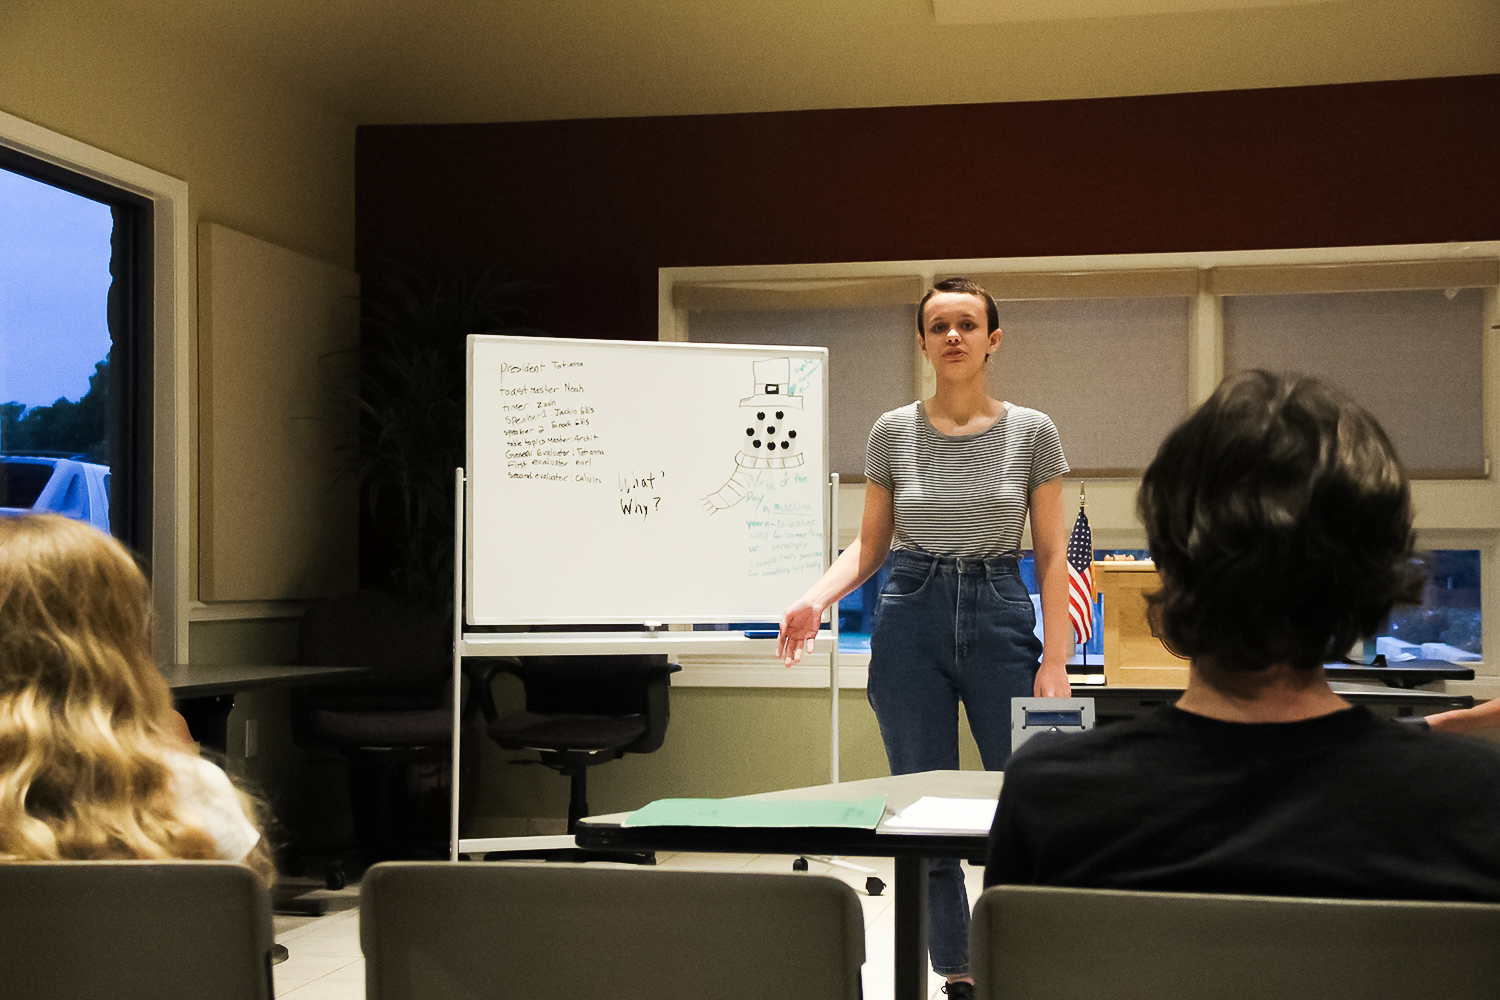 Speaking at a Youth Toastmasters 4-H Club meeting, senior Deana Trautz completes an impromptu table topic. Trautz formed the club last March, creating the first youth Toastmasters club in all of Austin.